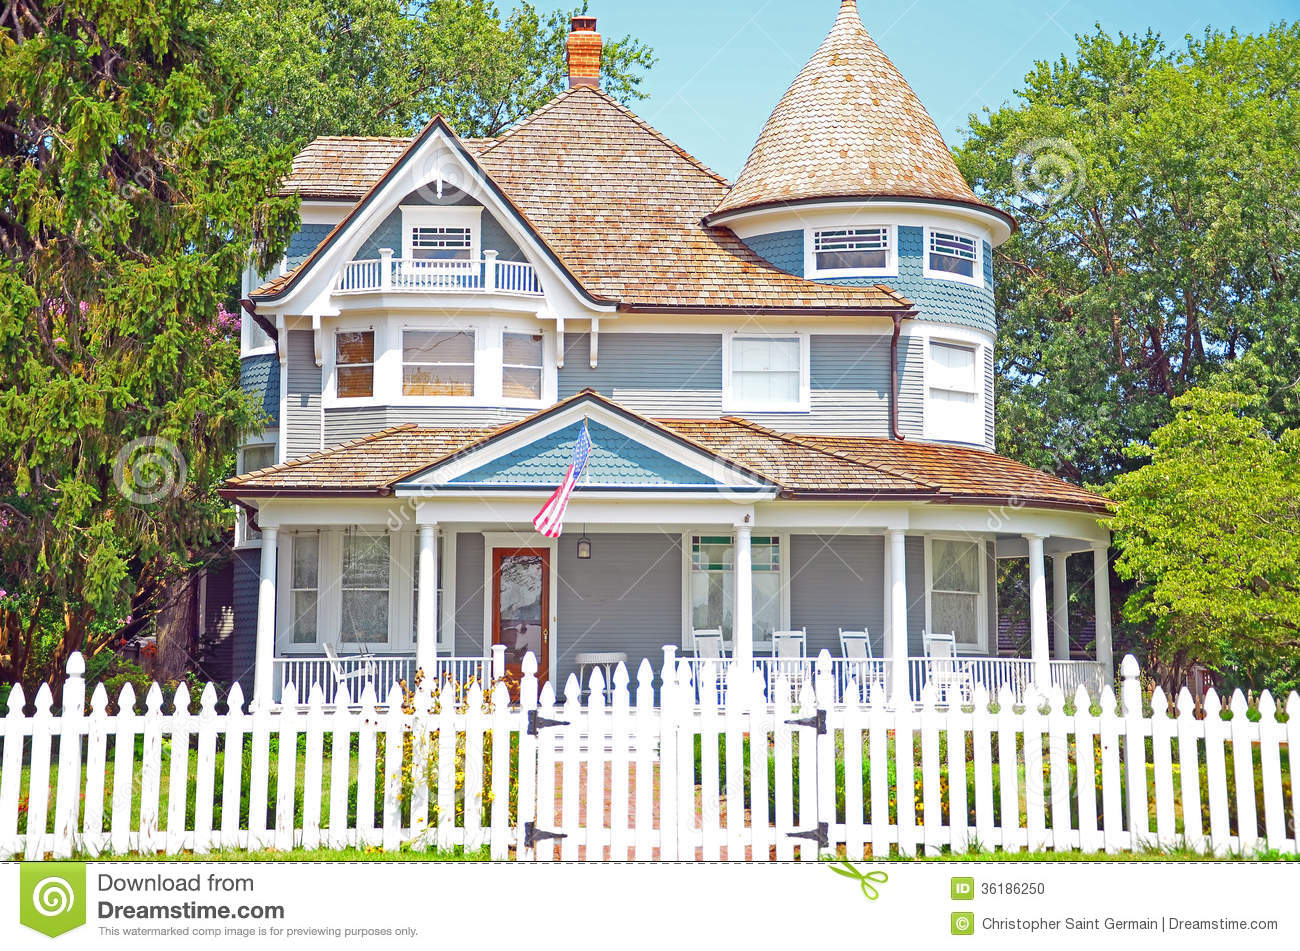 House With White Picket Fence American Dream Clipart.